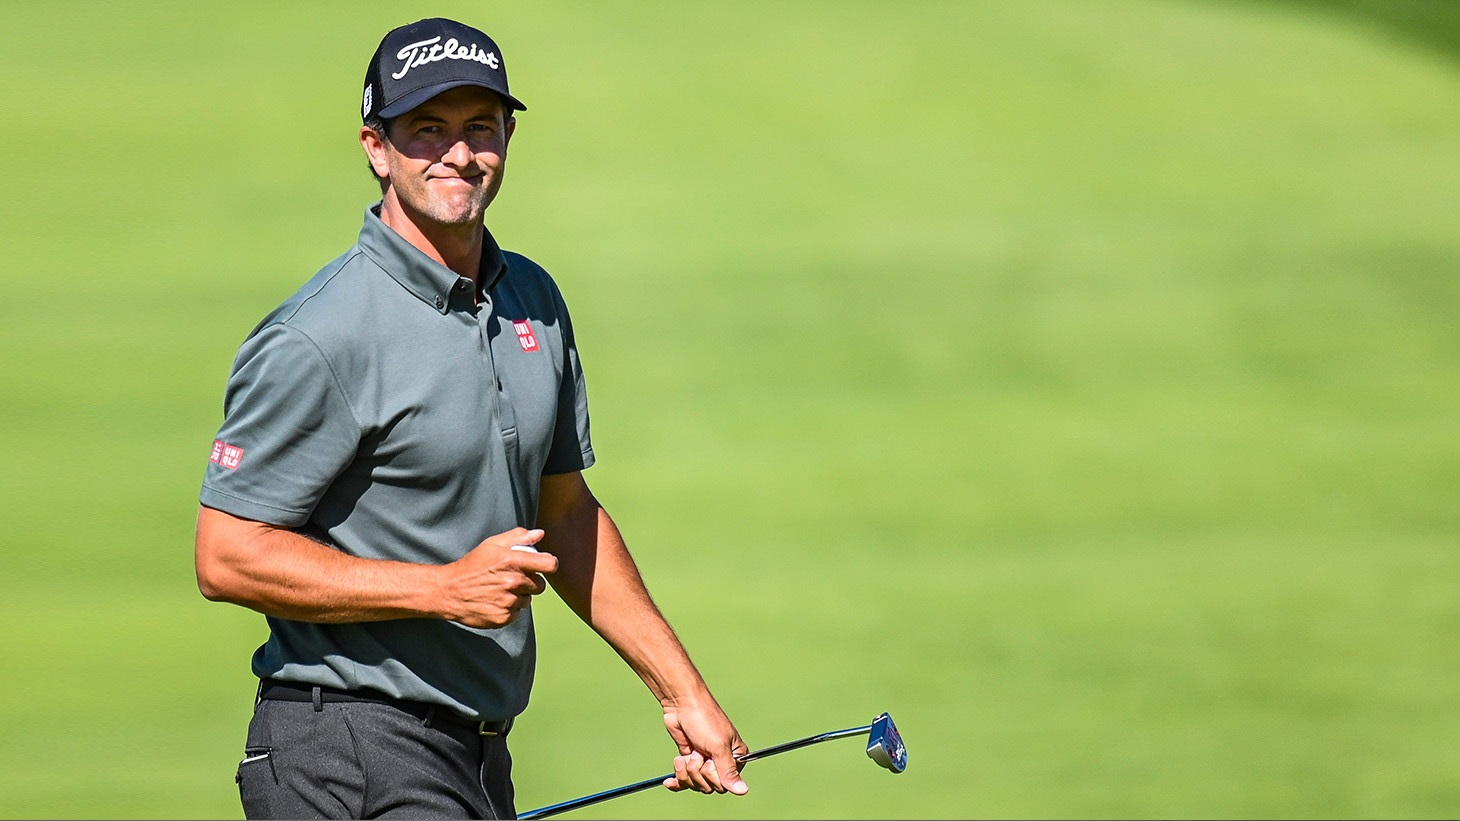 Adam Scott smiles after holing a birdie putt during action at the 2019 PLAYERS Championship